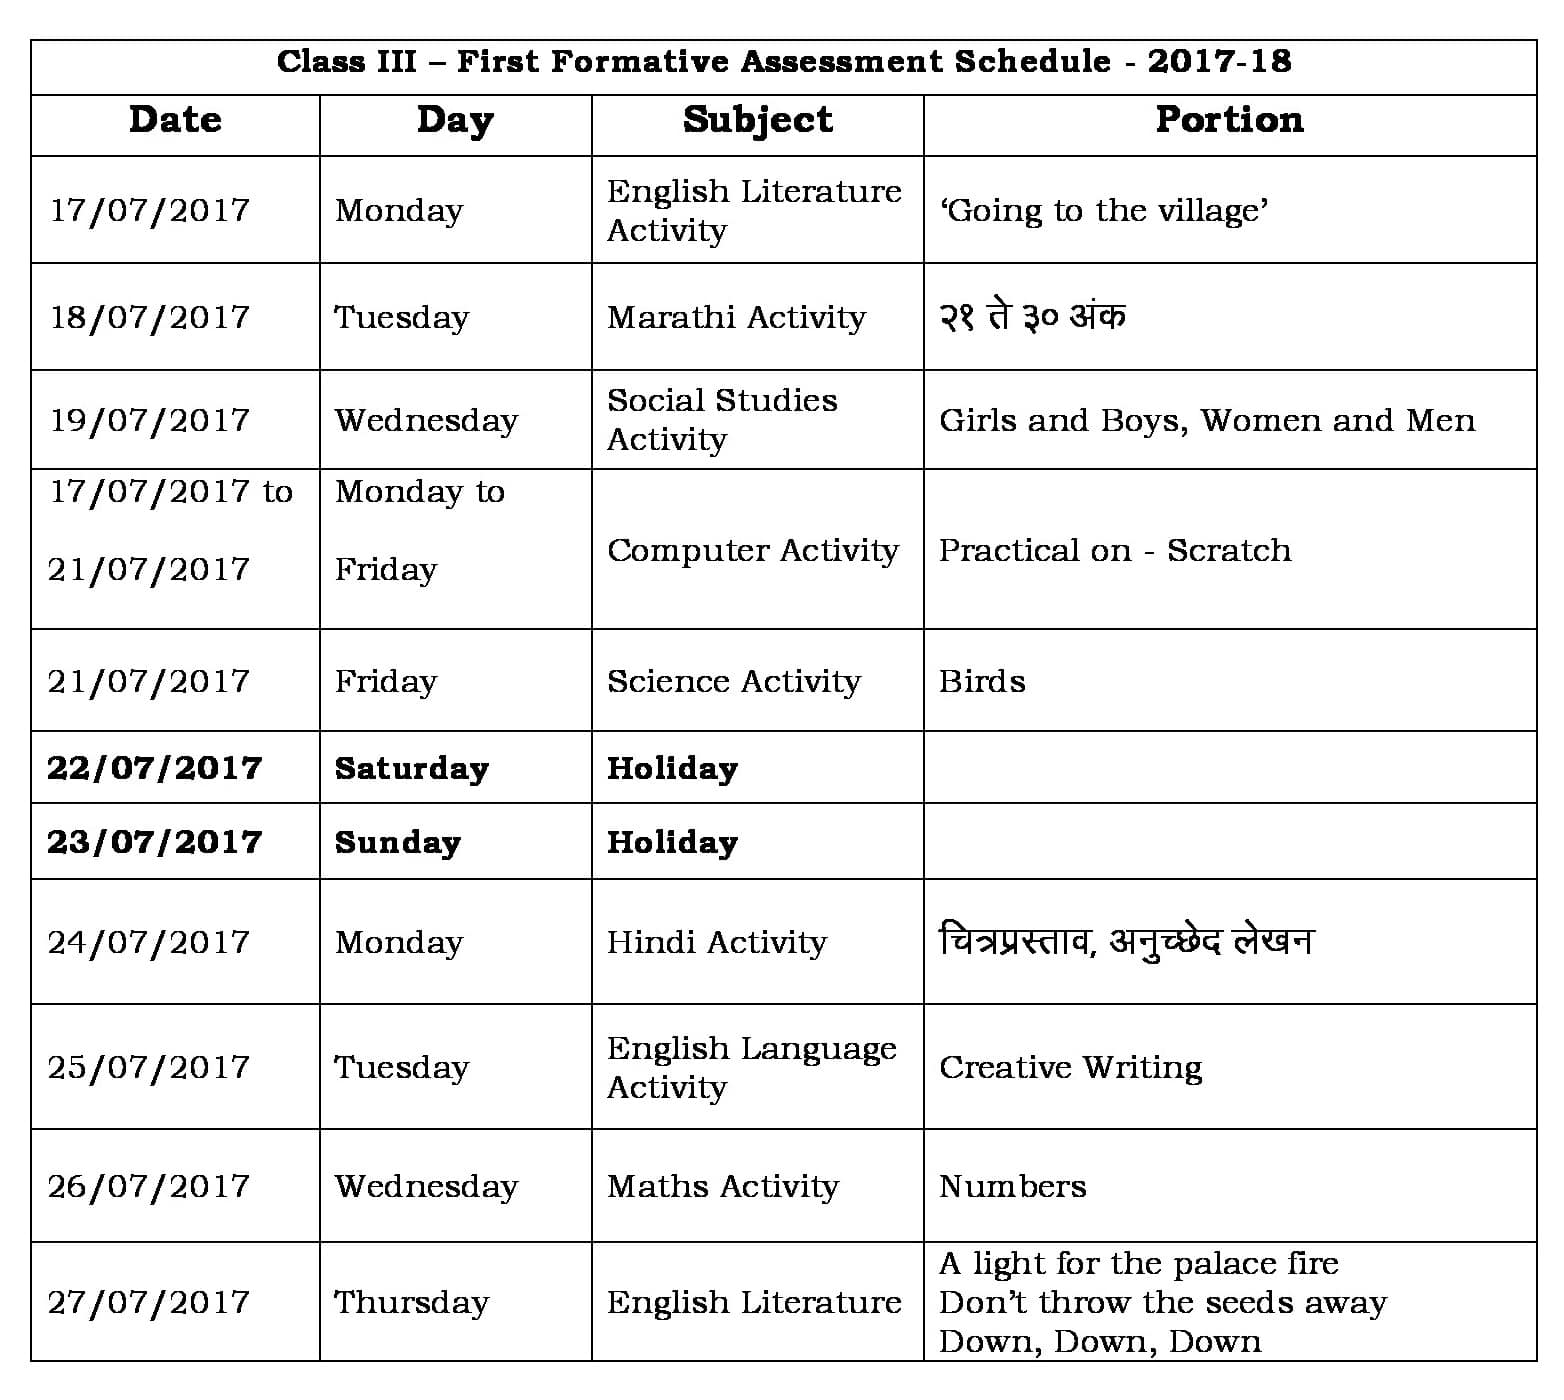 FA1 Portion and Schedule- 2017-18